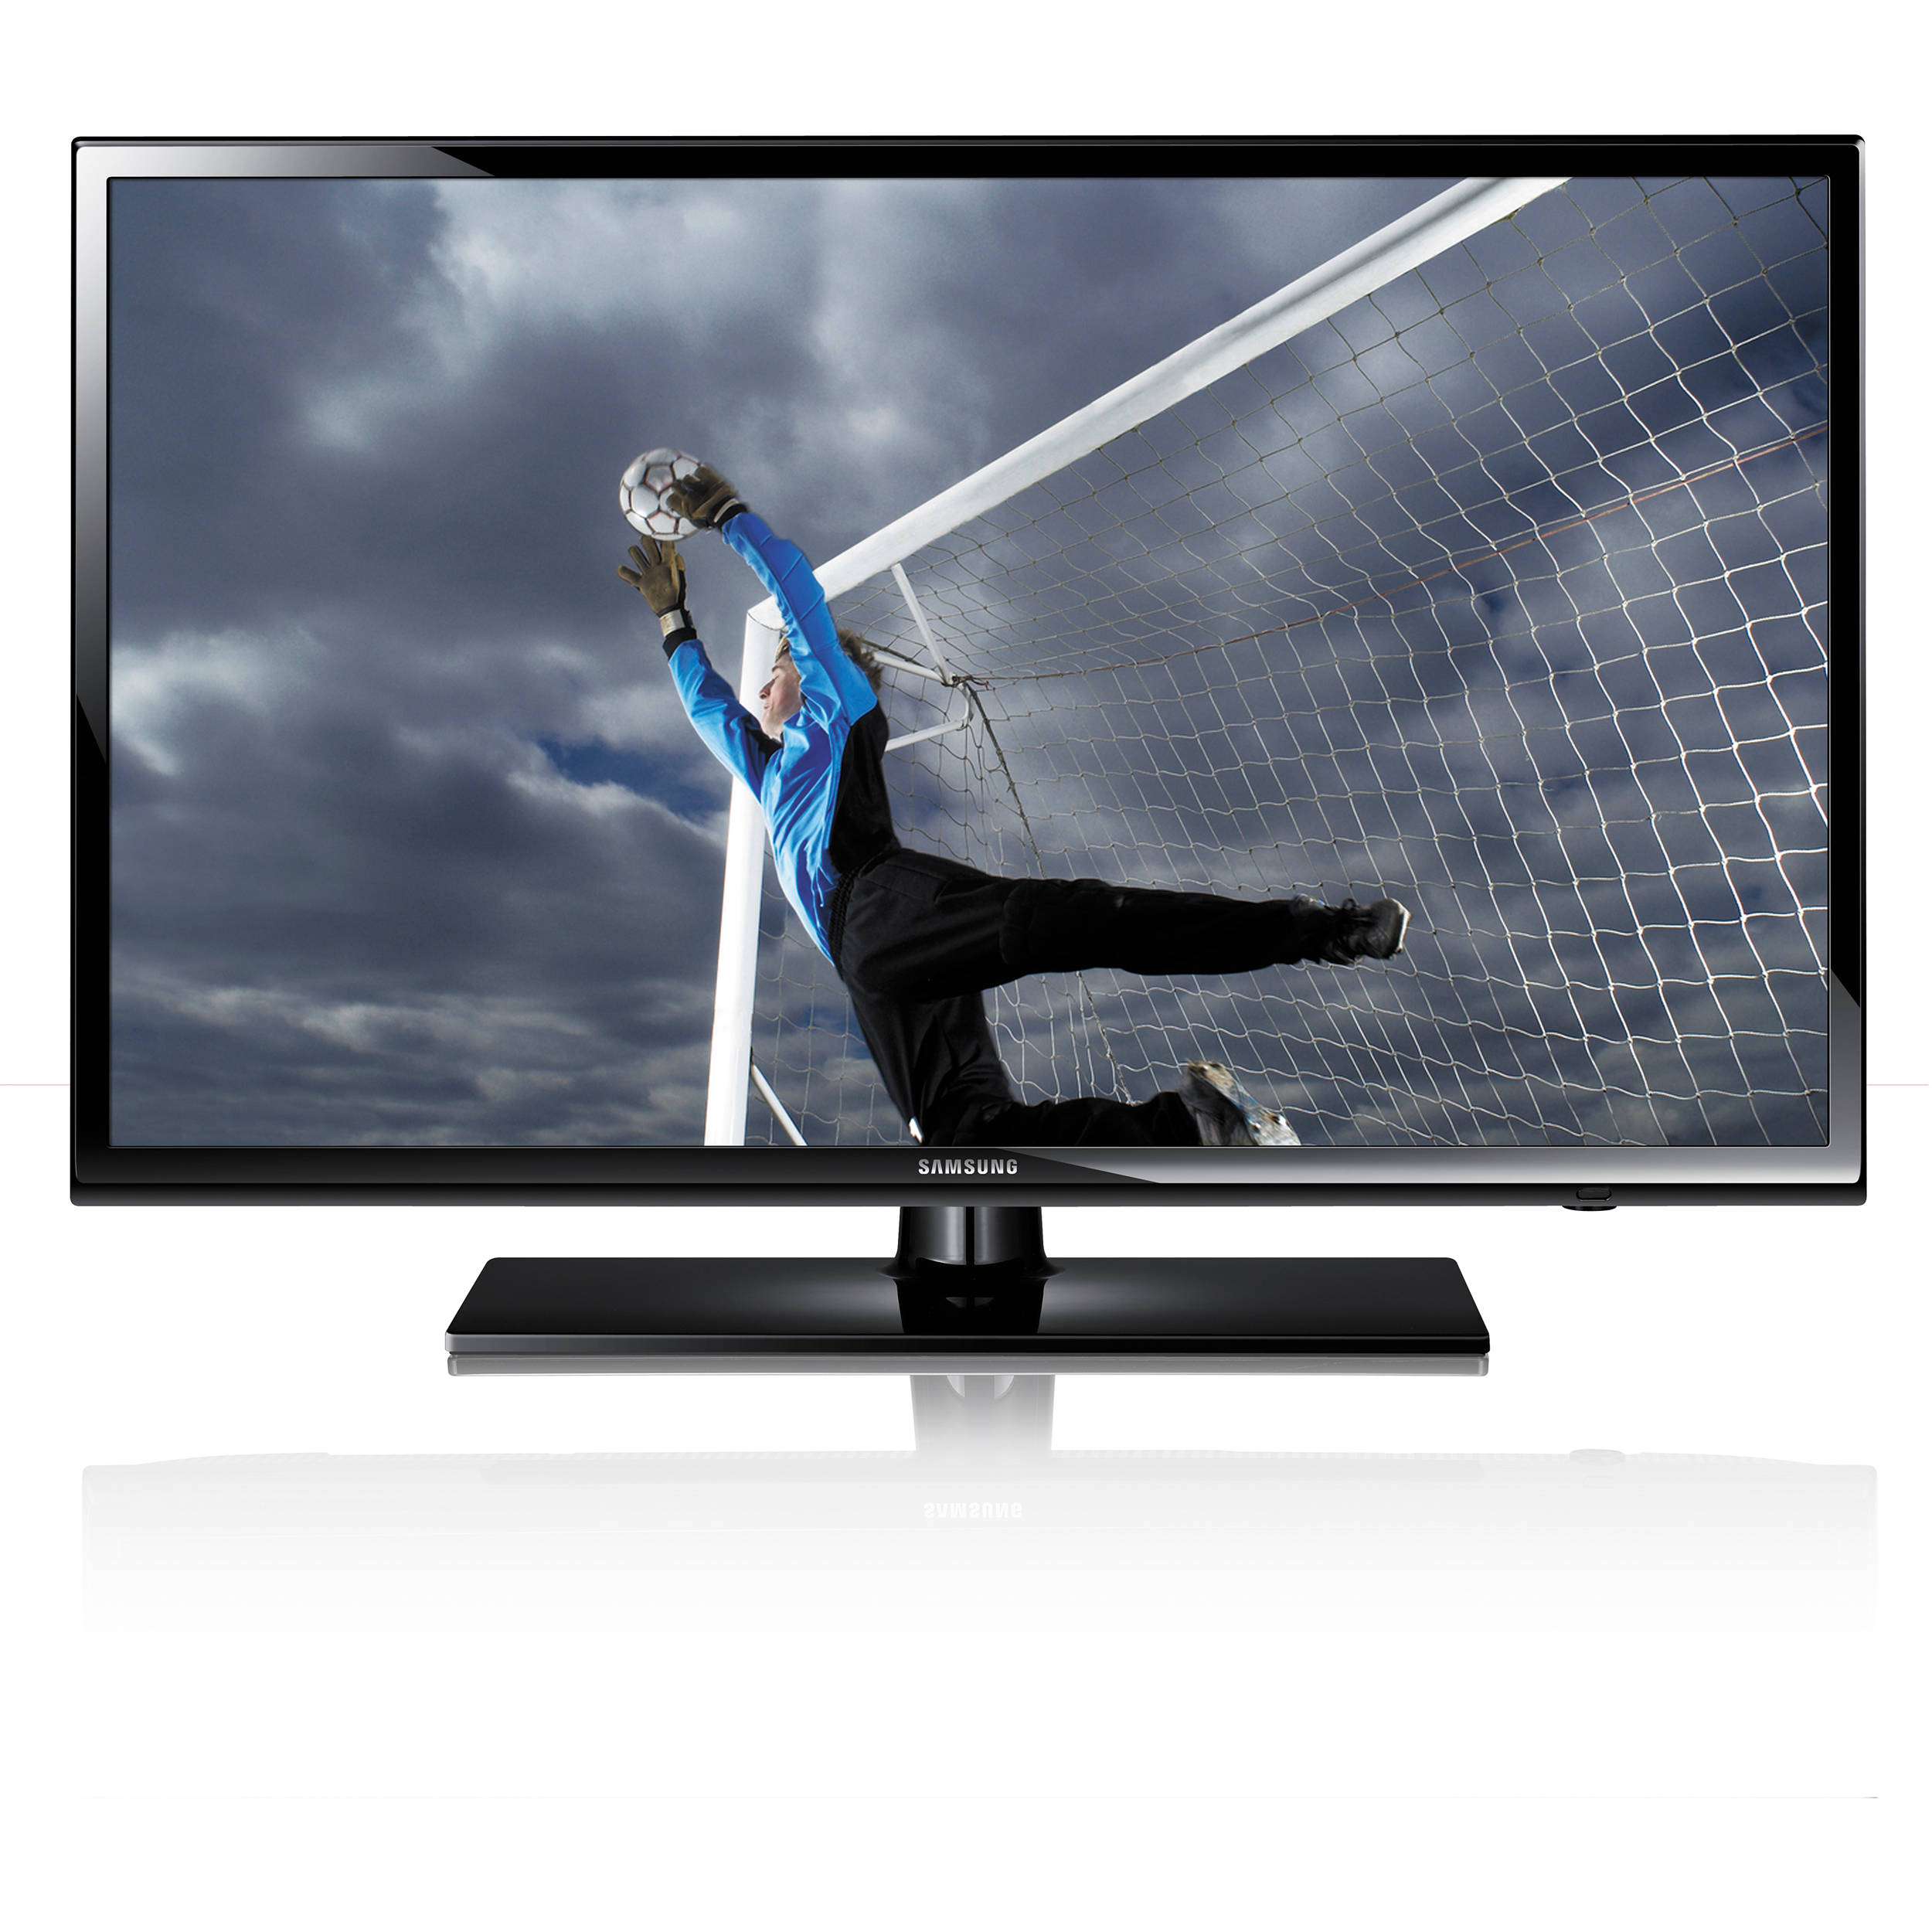 samsung h5003 series 40 class full hd led tv. Black Bedroom Furniture Sets. Home Design Ideas